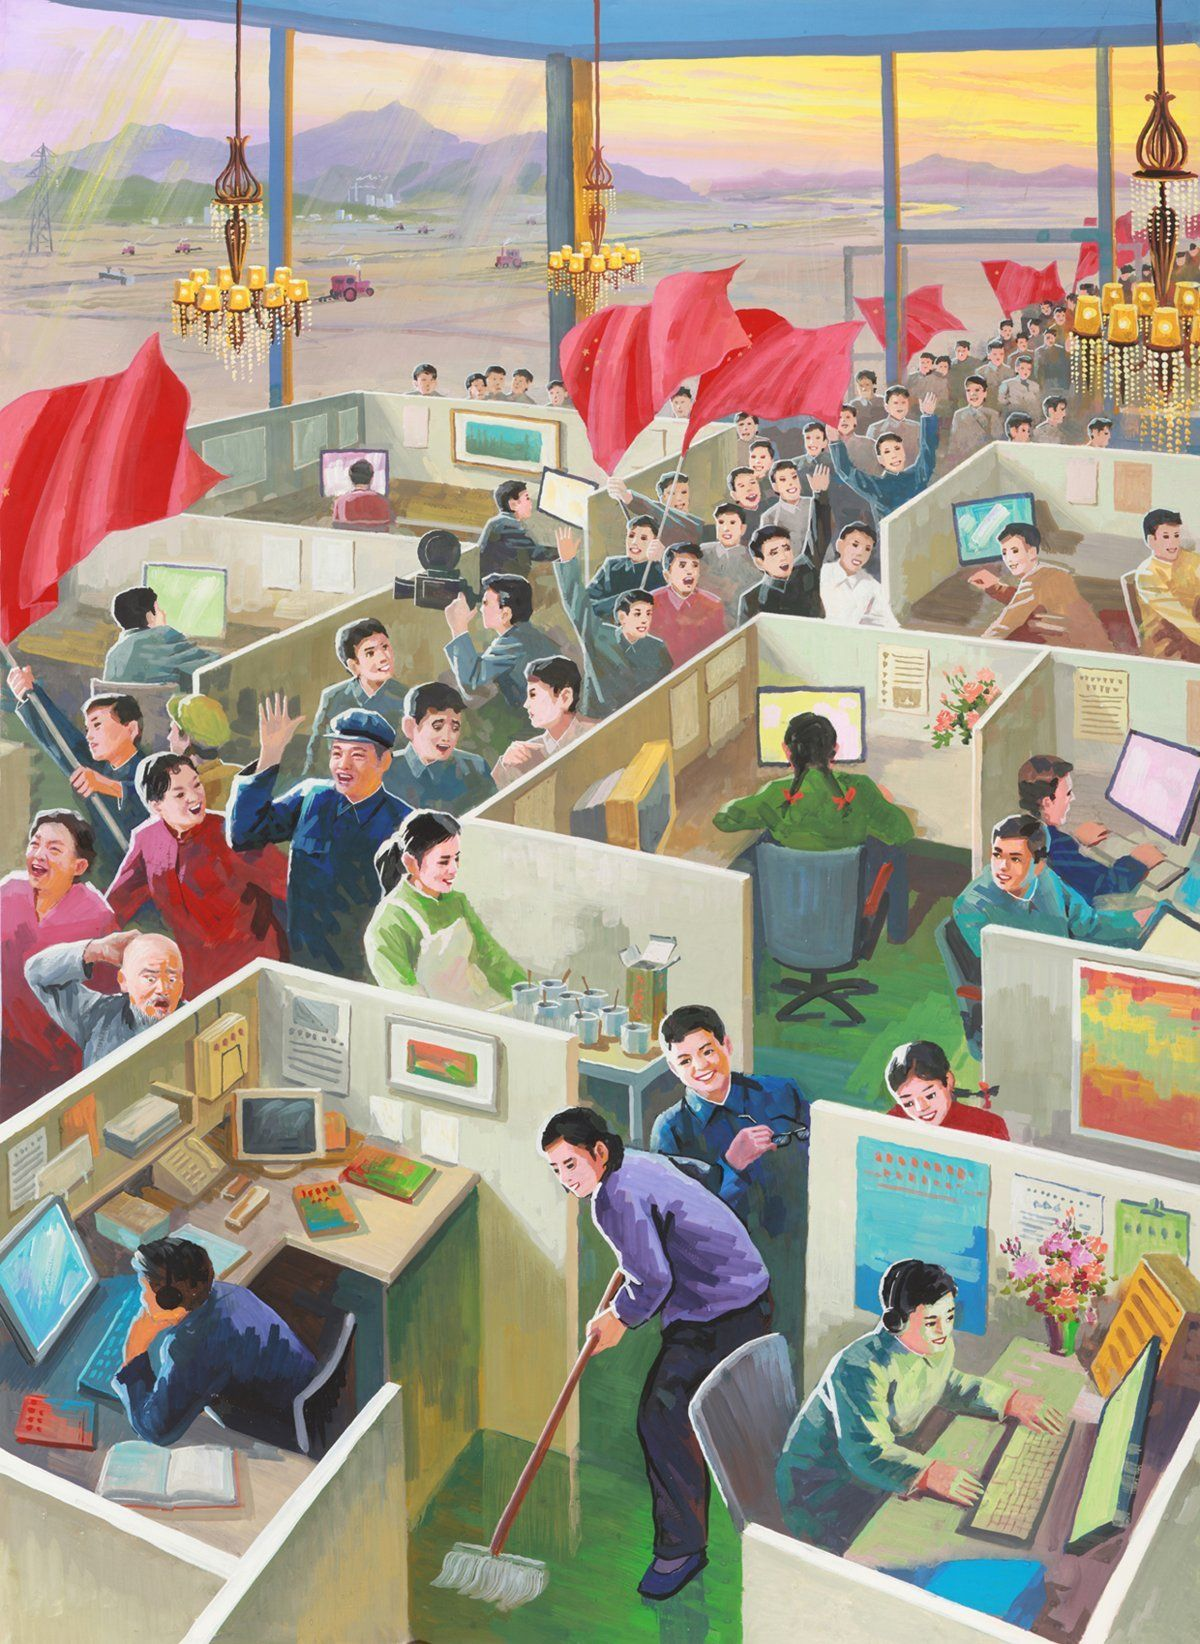 North Korean Propaganda Artists Painted These Incredible Pictures Of China As A Socialist Utopia OFFICE CULTURE FOR PROSPERITY